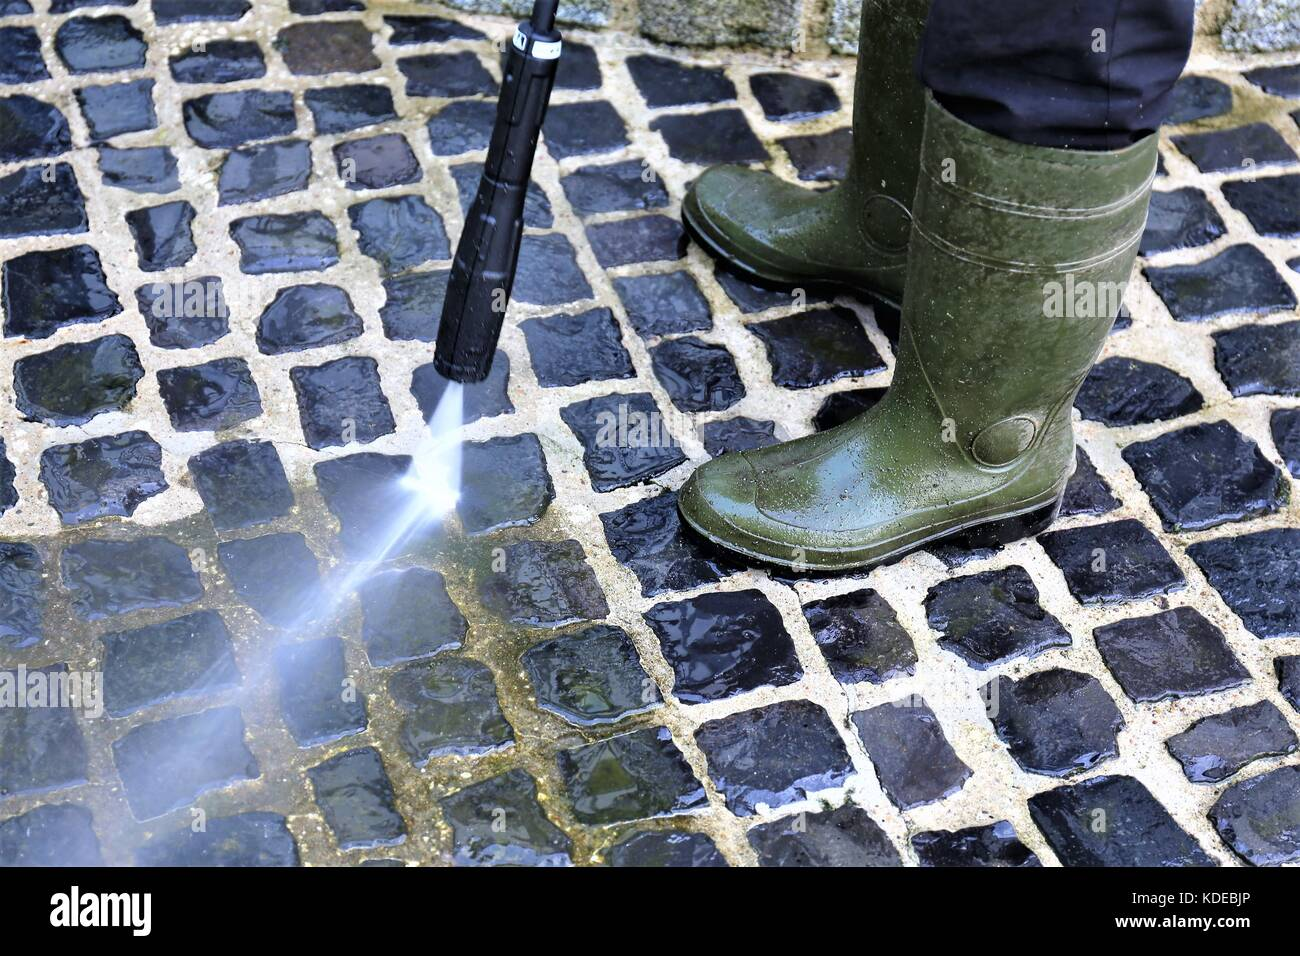 An Image of walkway cleaning - high pressure cleaner - Stock Image